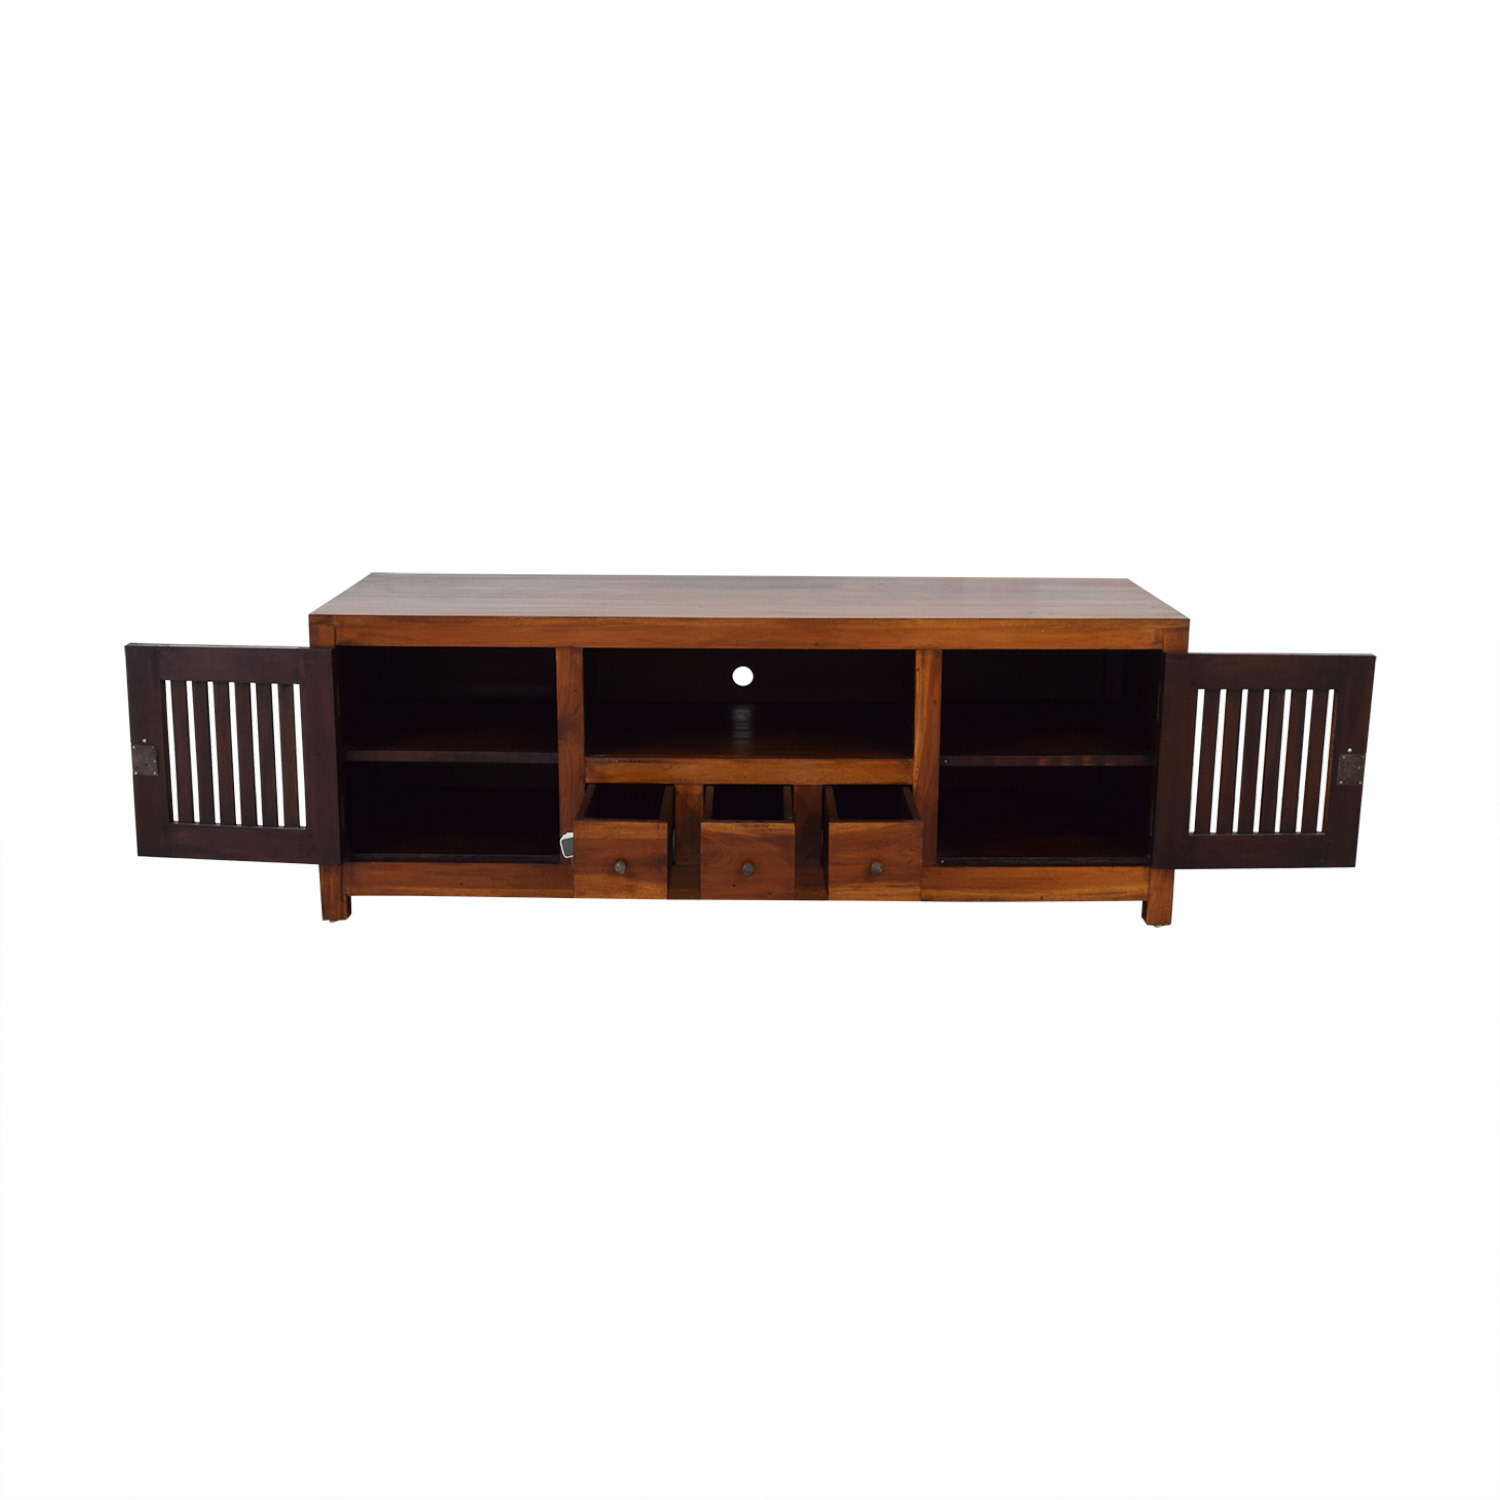 Teak Entertainment Center dimensions